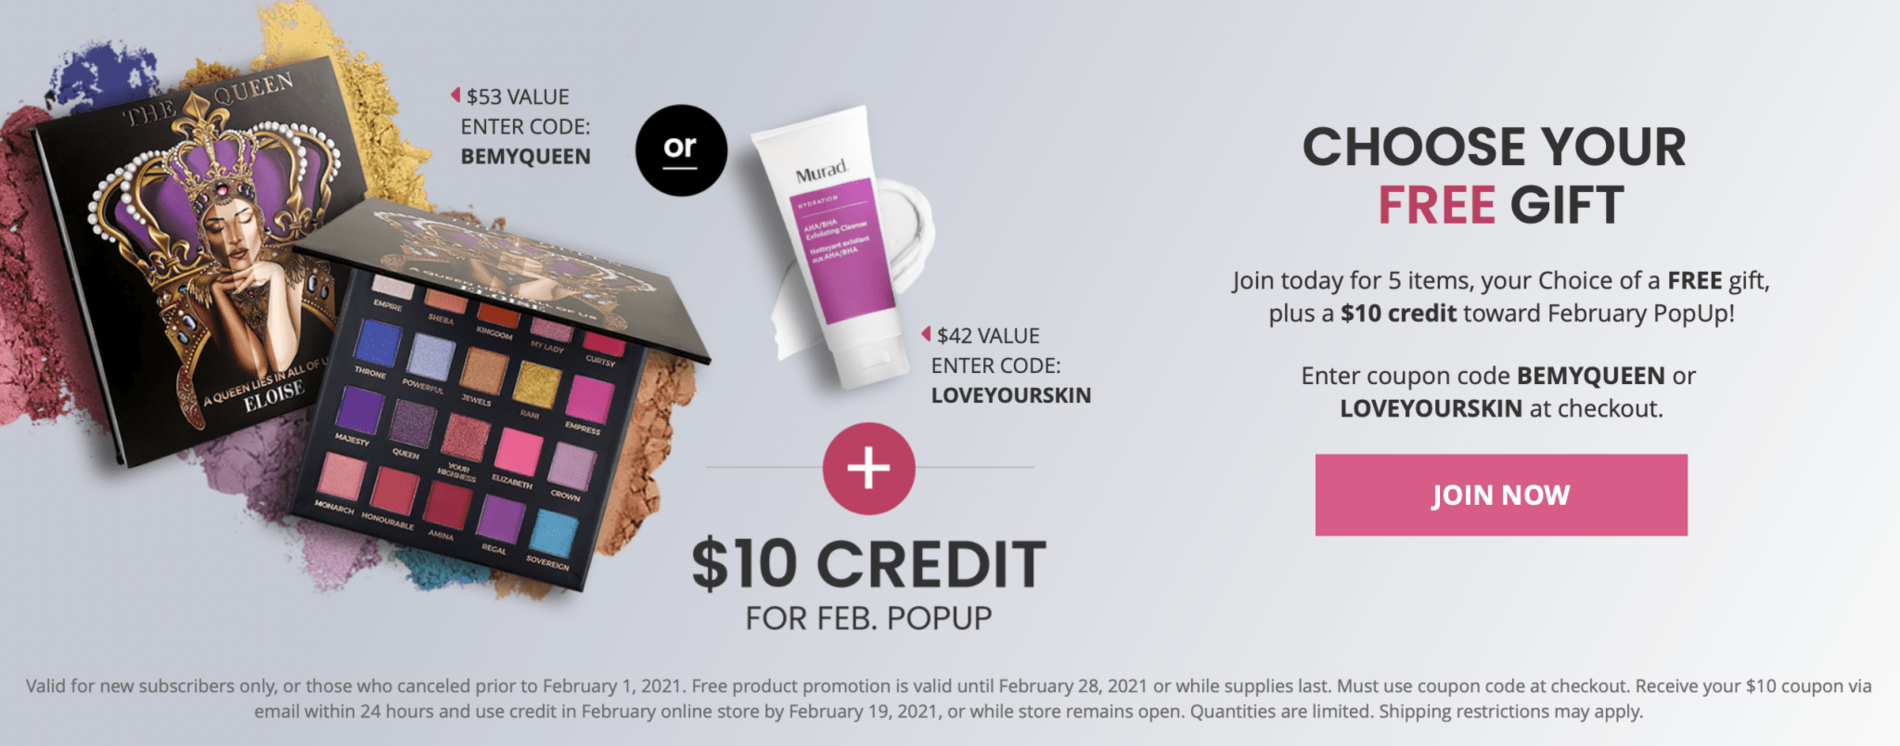 BOXYCHARM February 2021 Coupon Code – Choice of FREE Gift with Purchase + $10 Pop-Up Credit!